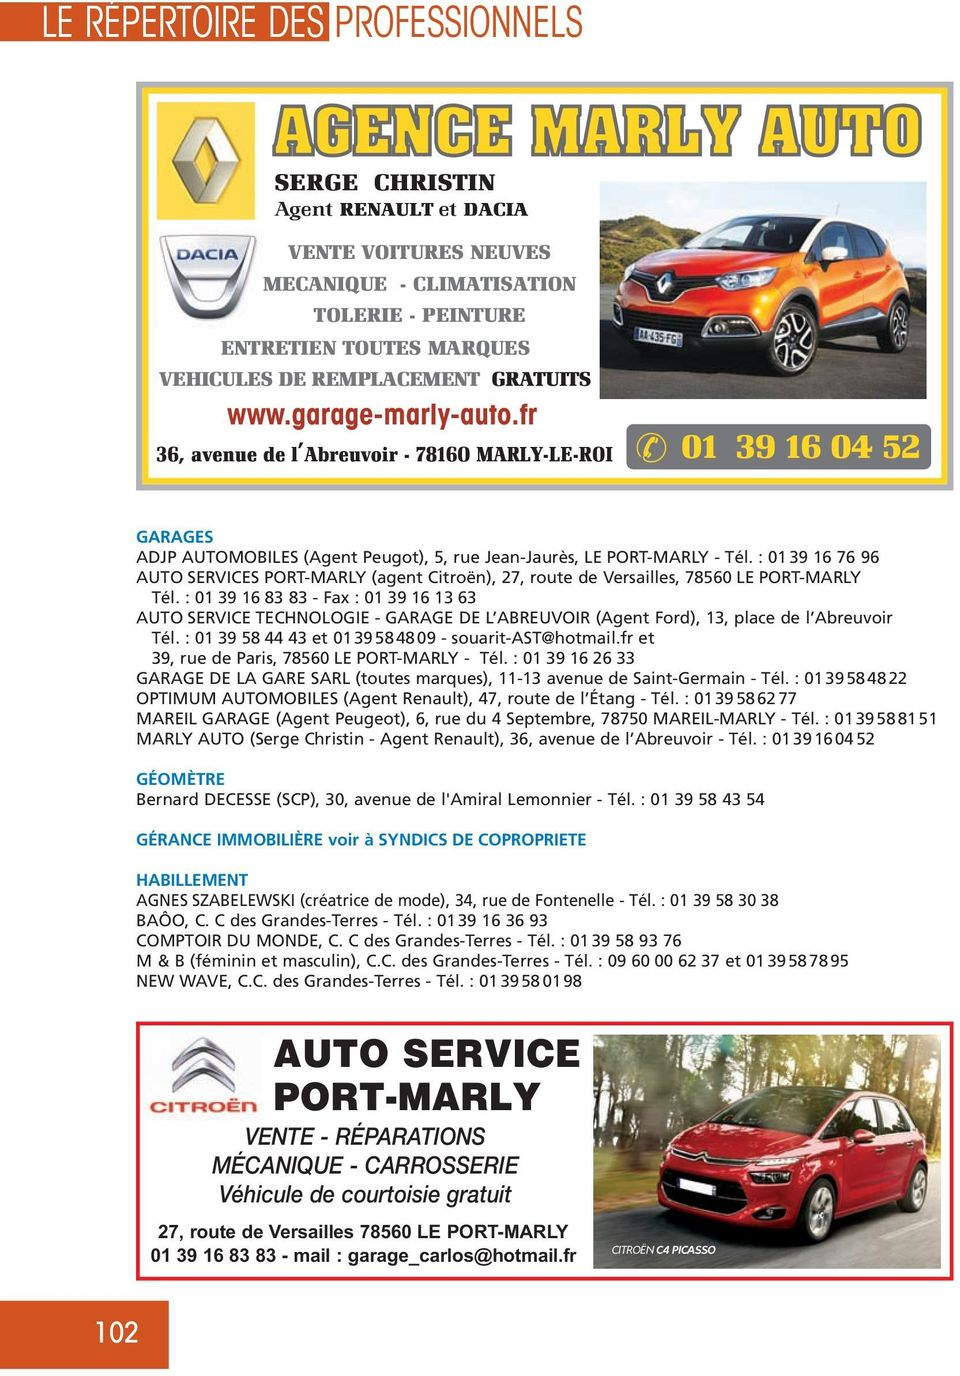 : 01 39 16 76 96 AUTO SERVICES PORT-MARLY (agent Citroën), 27, route de Versailles, 78560 LE PORT-MARLY Tél.